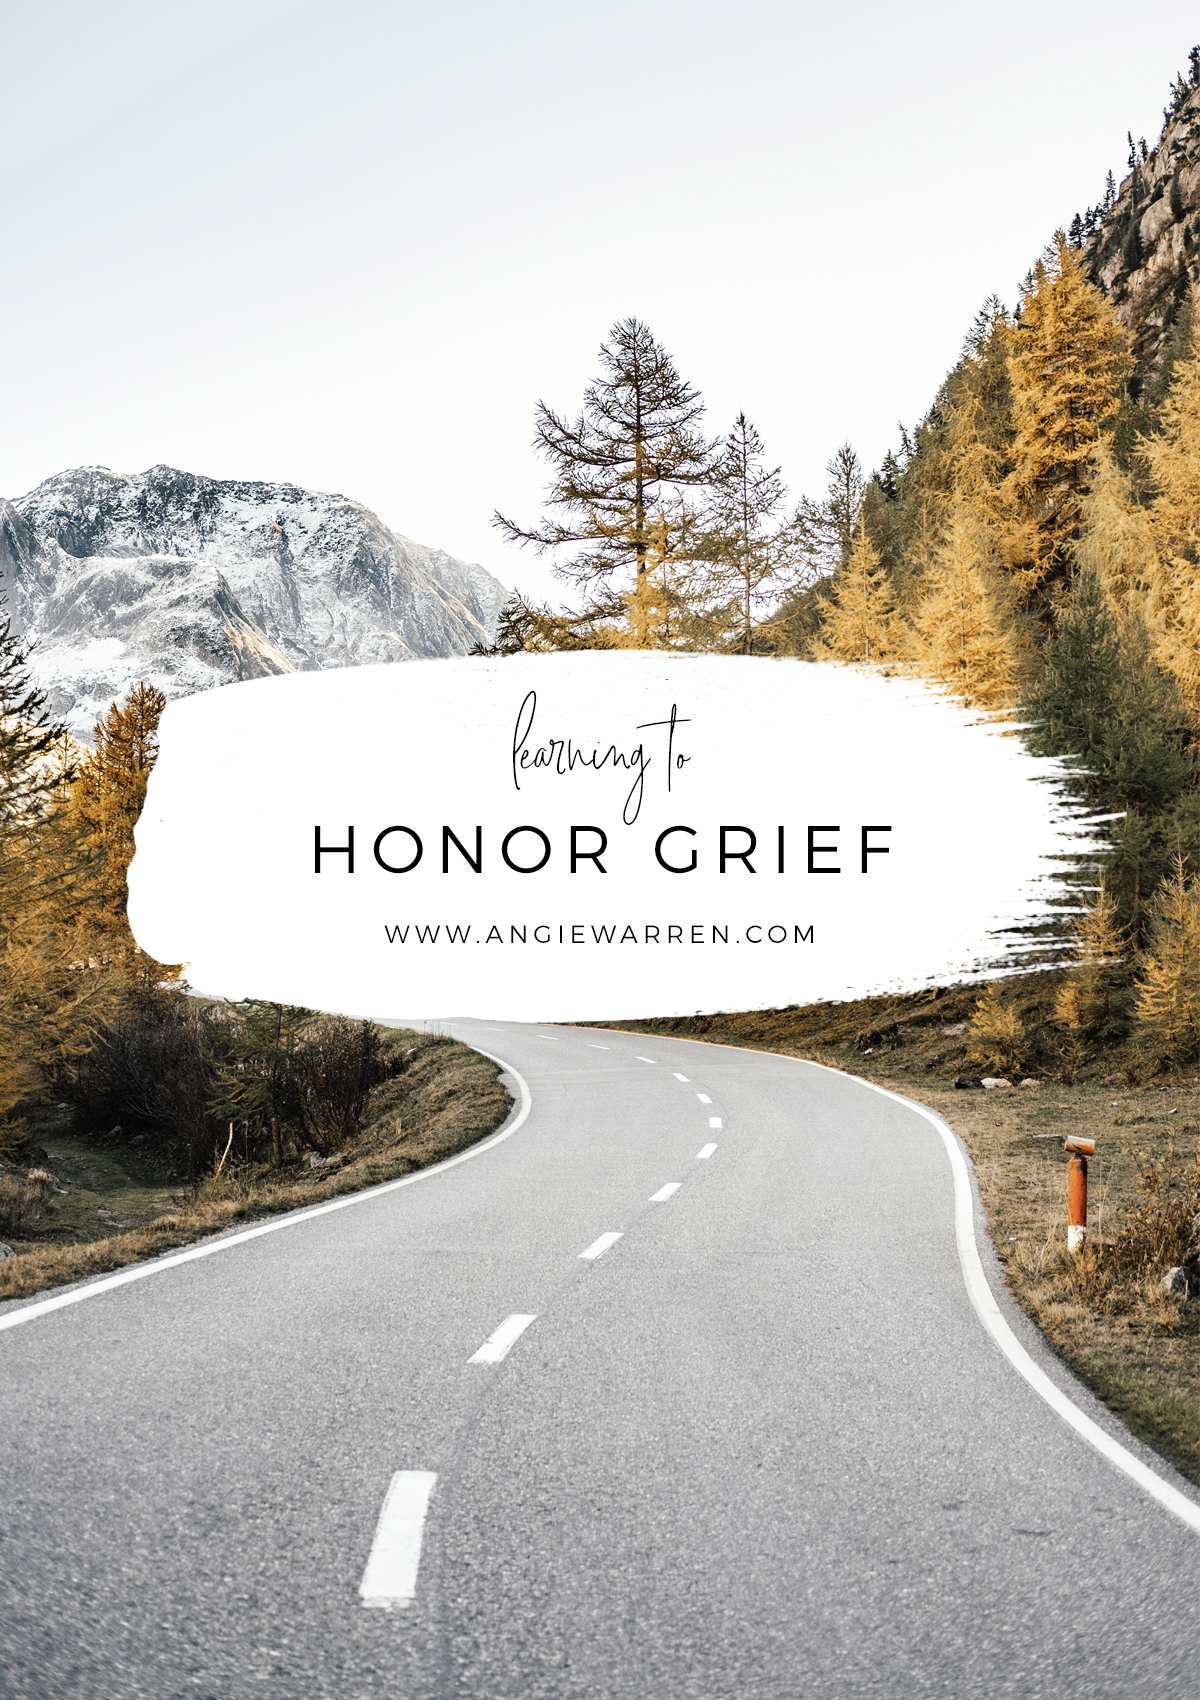 Learning to Honor Grief / www.angiewarren.com